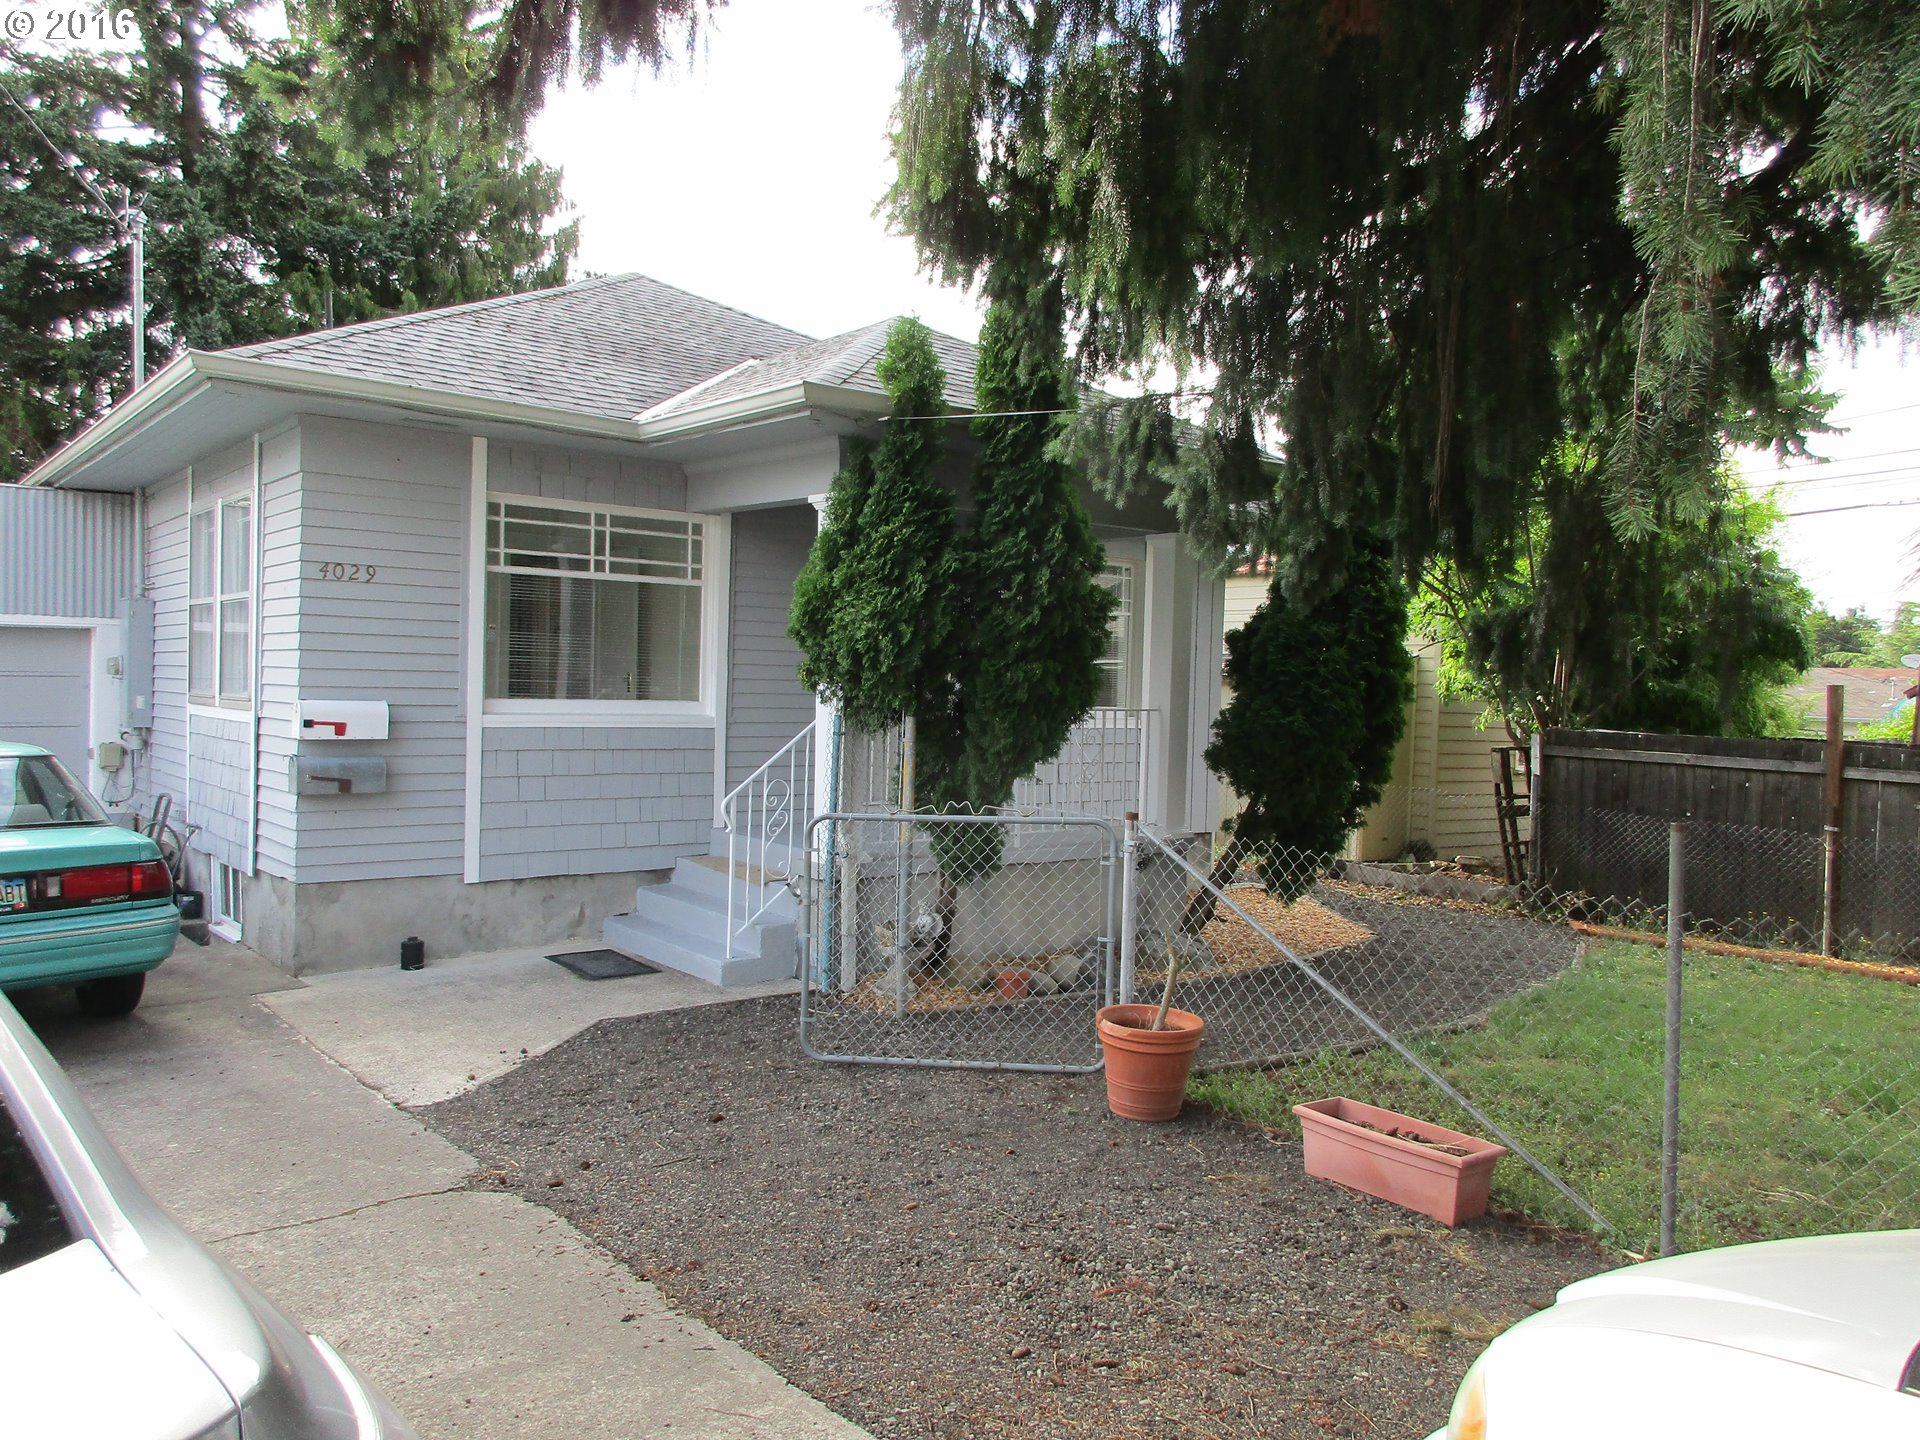 4029 NE CULLY BLVD, Portland OR 97213